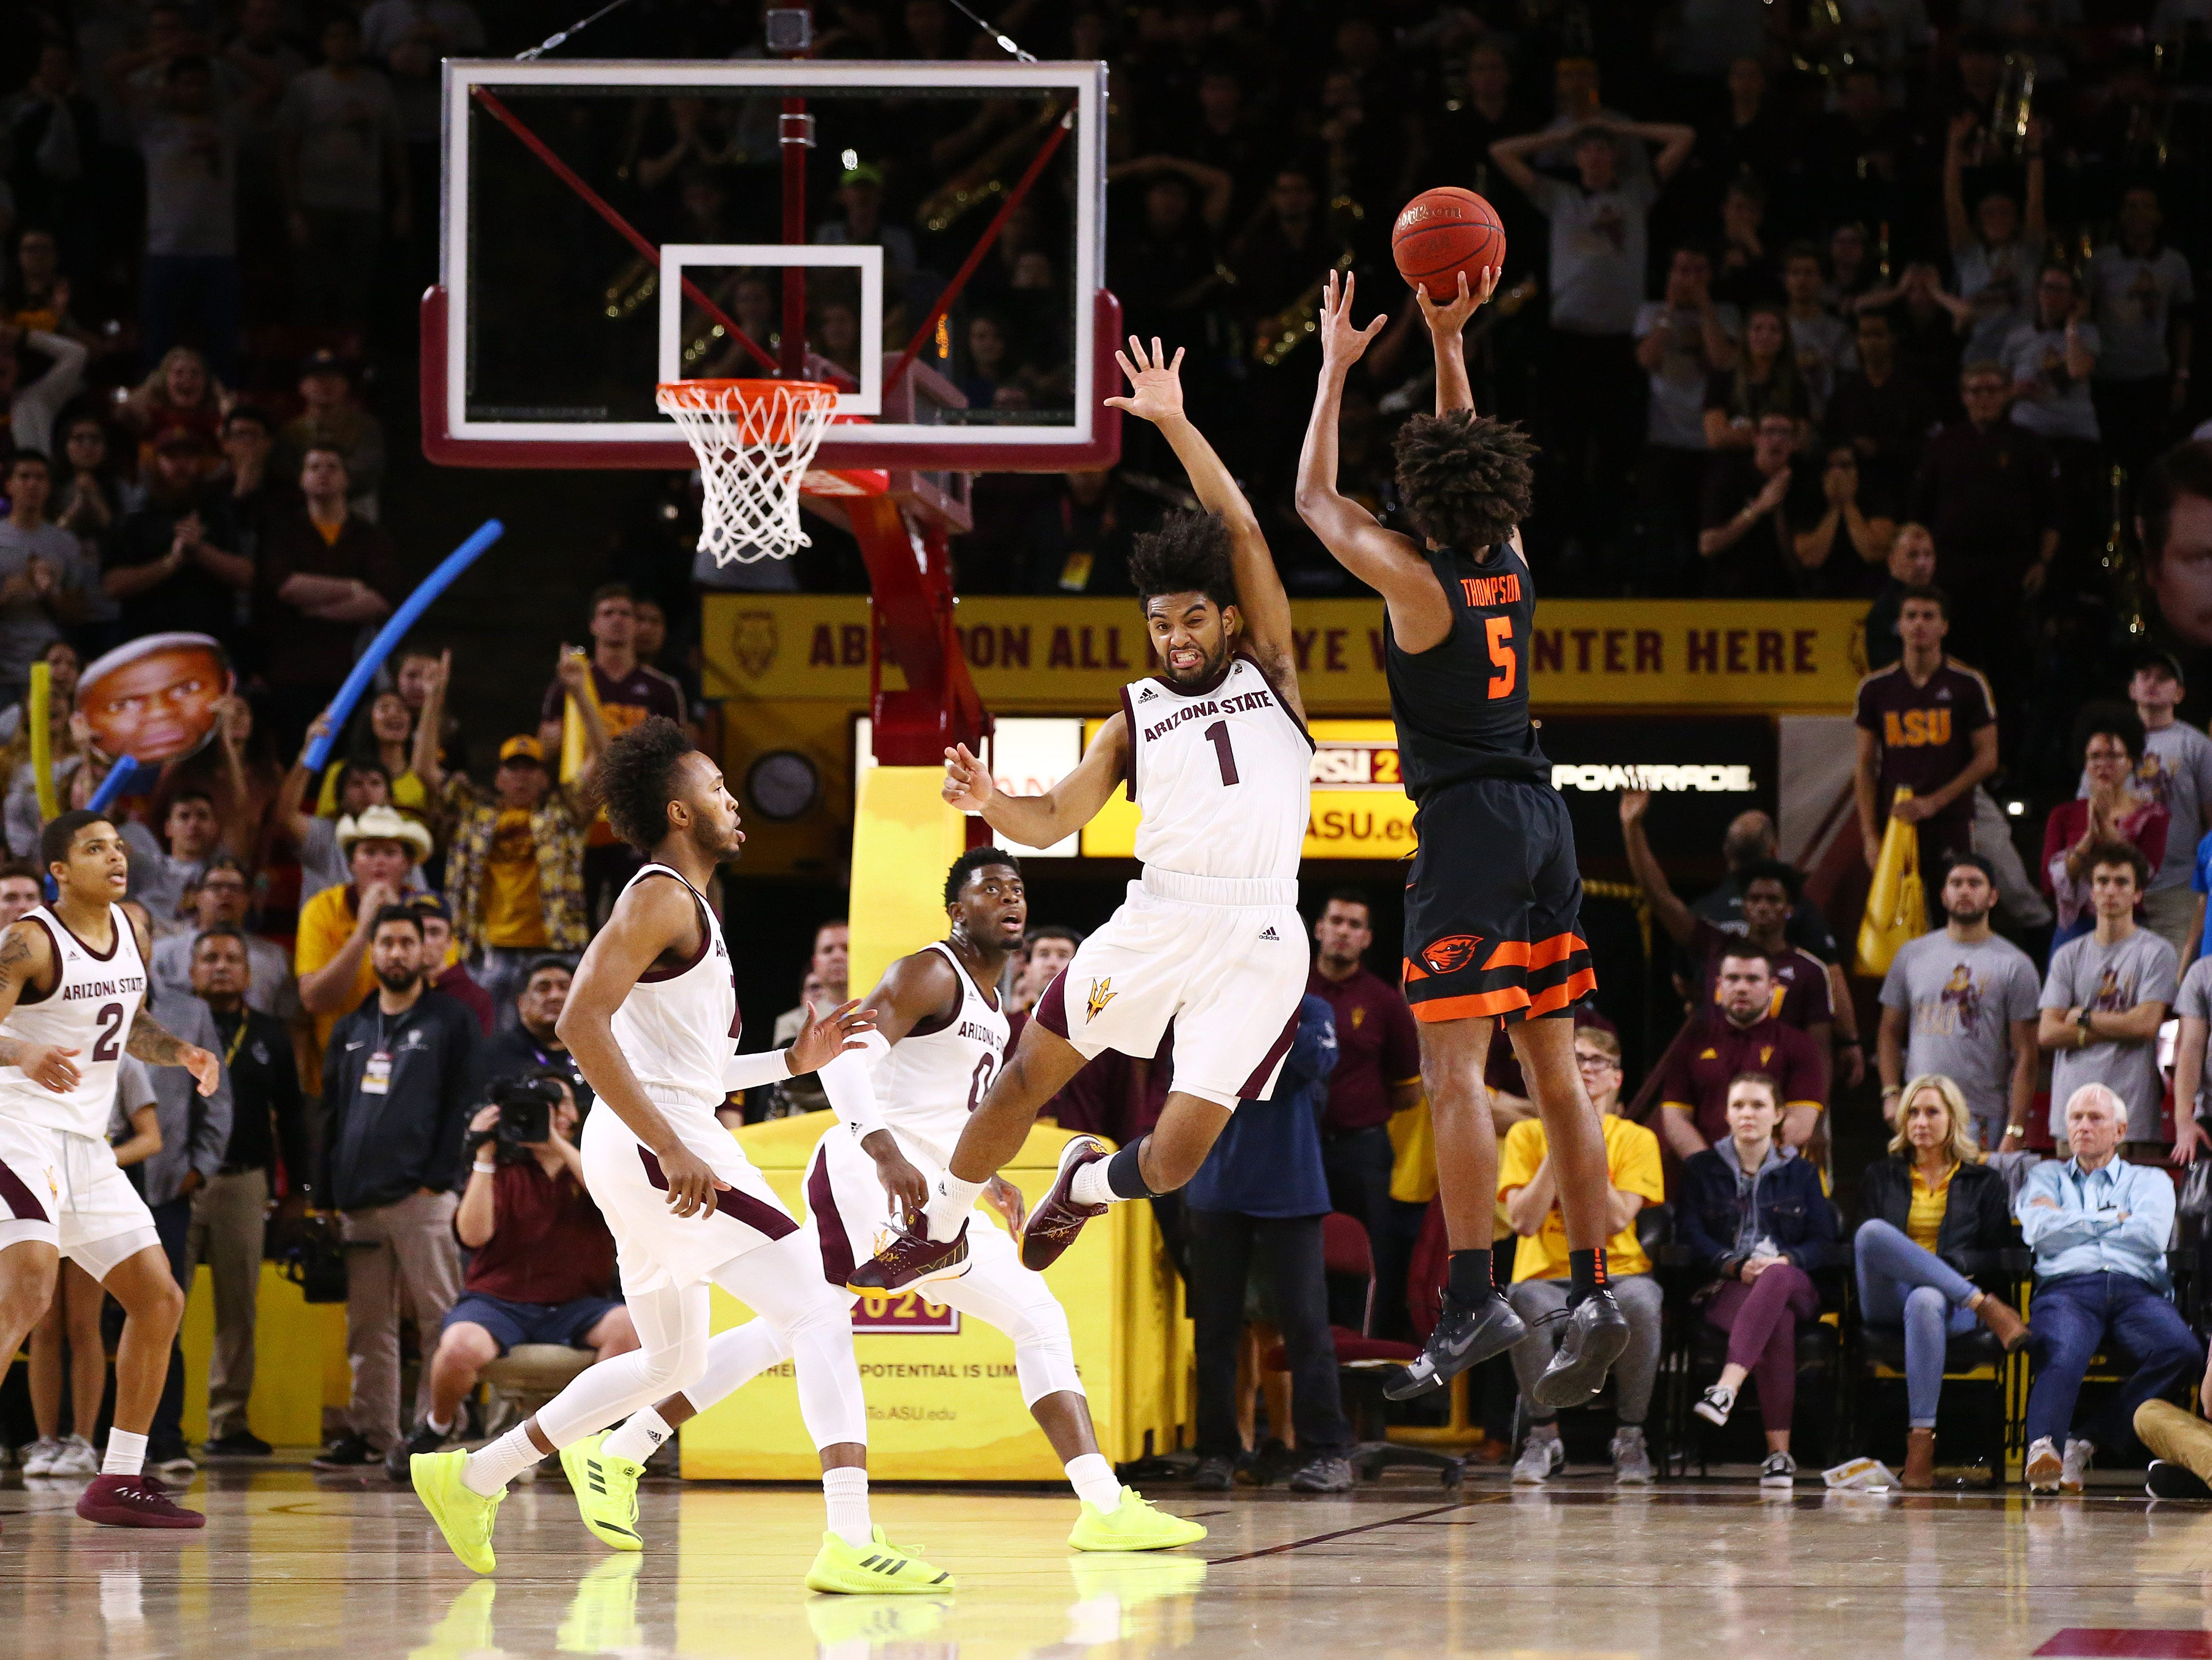 Oregon State Beavers guard Ethan Thompson misses a game tying 3-pointer against the Arizona State Sun Devils to end the game on Jan. 17 at Wells Fargo Arena in Tempe.